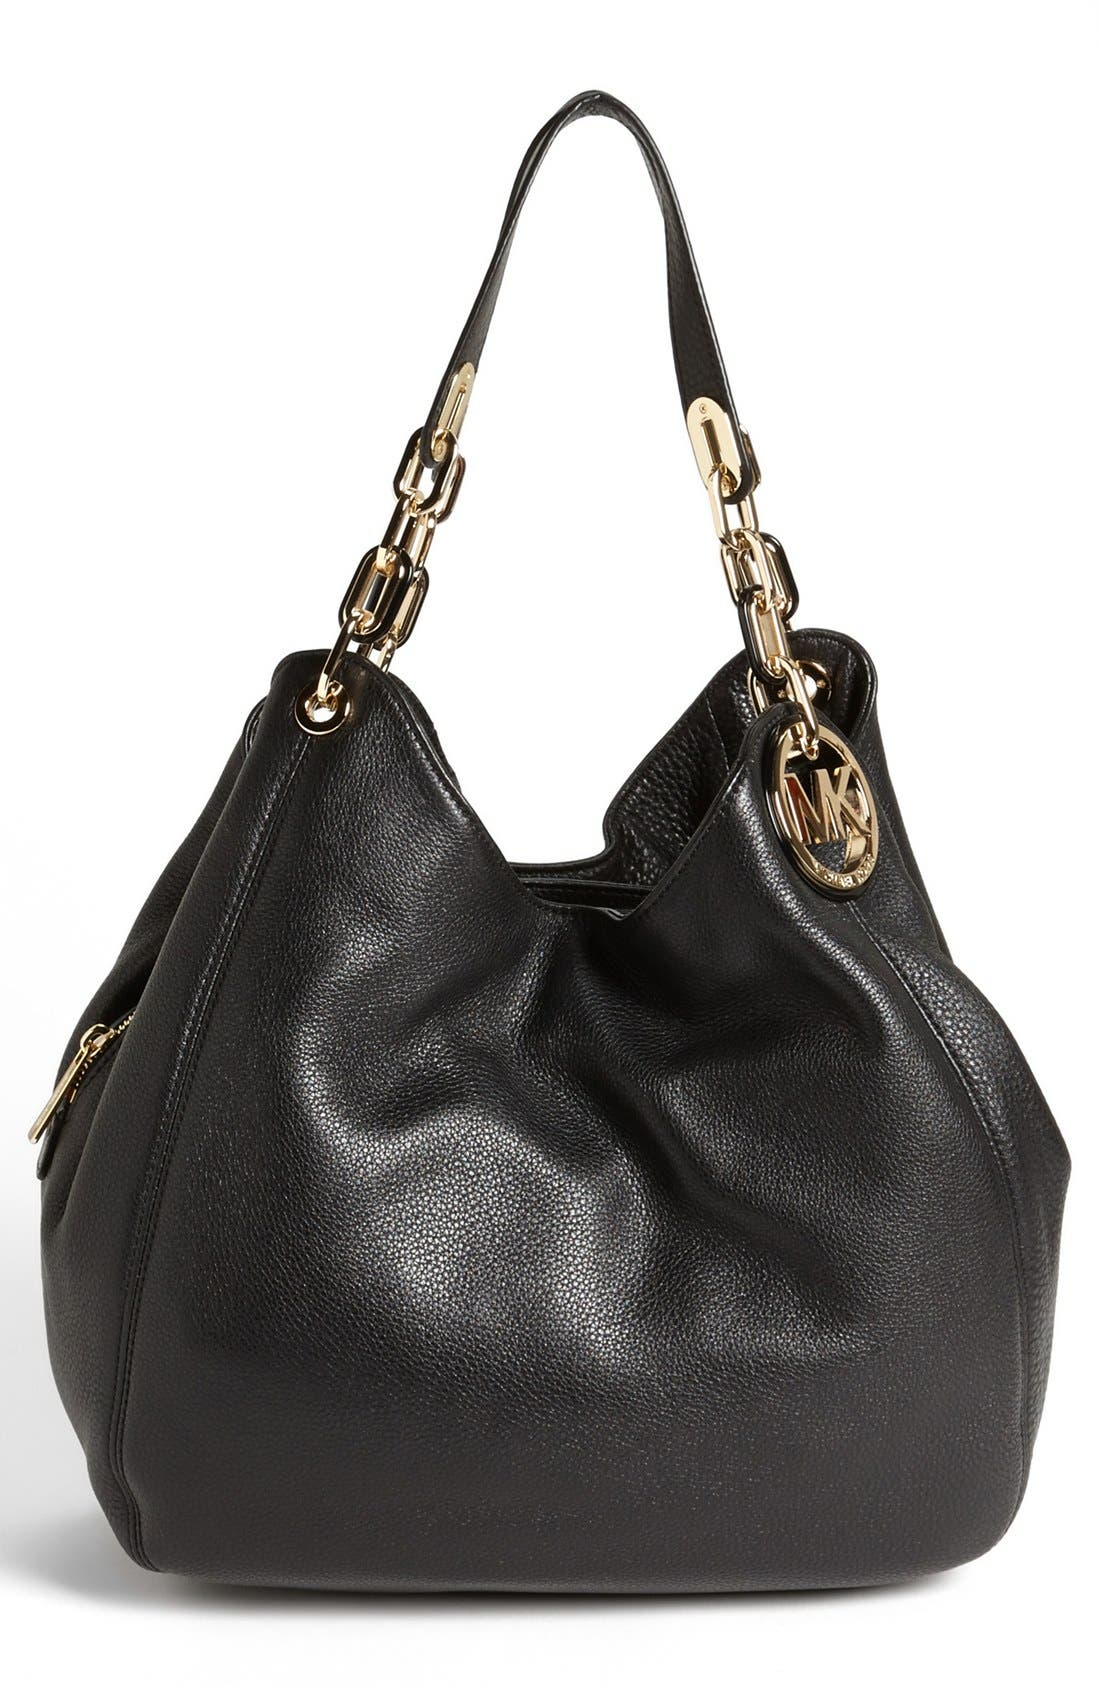 MICHAEL MICHAEL KORS,                             'Fulton - Large' Tote,                             Alternate thumbnail 4, color,                             001